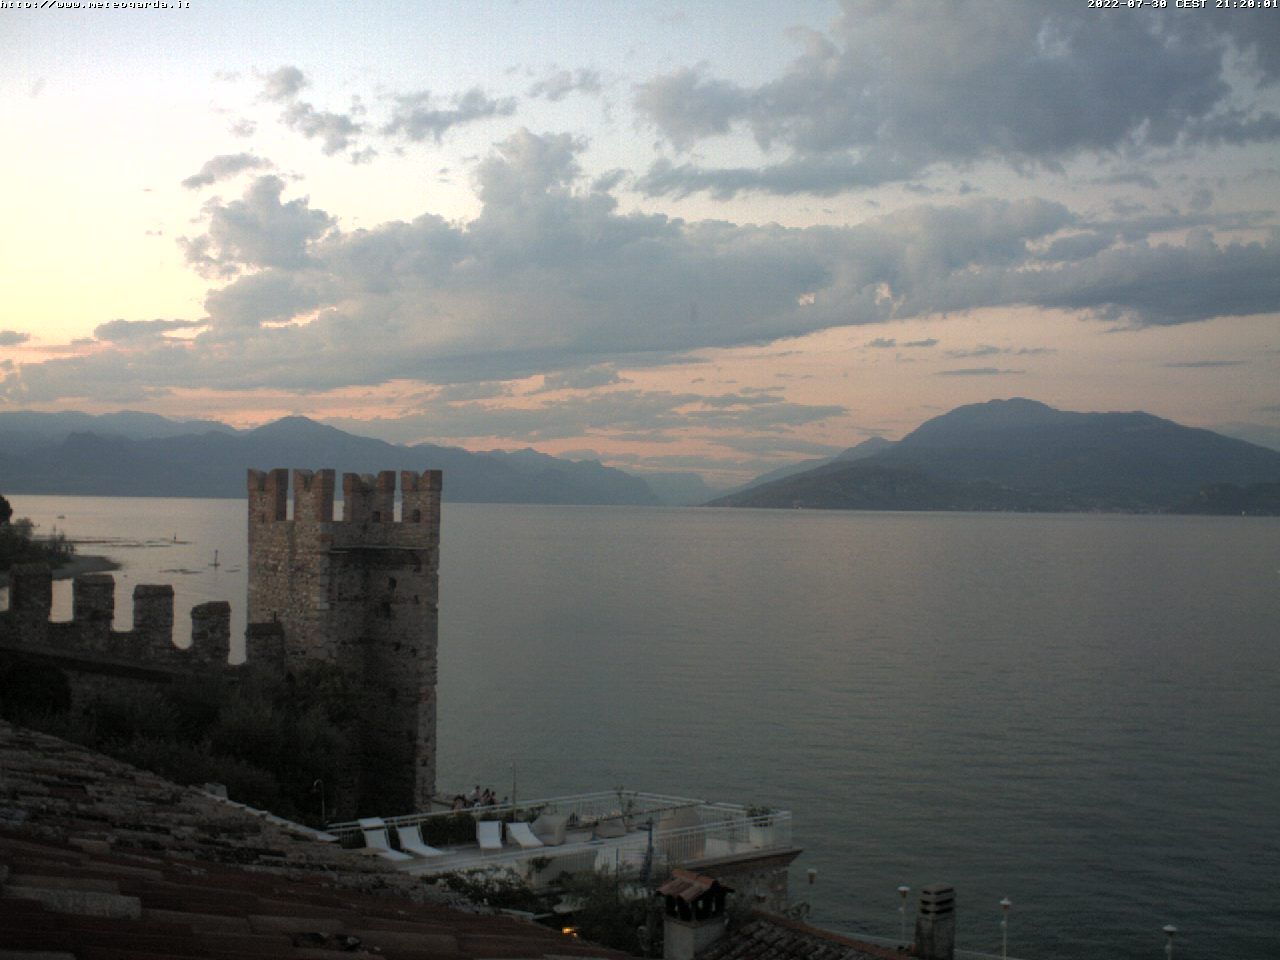 Webcam von http://www.meteosirmione.it